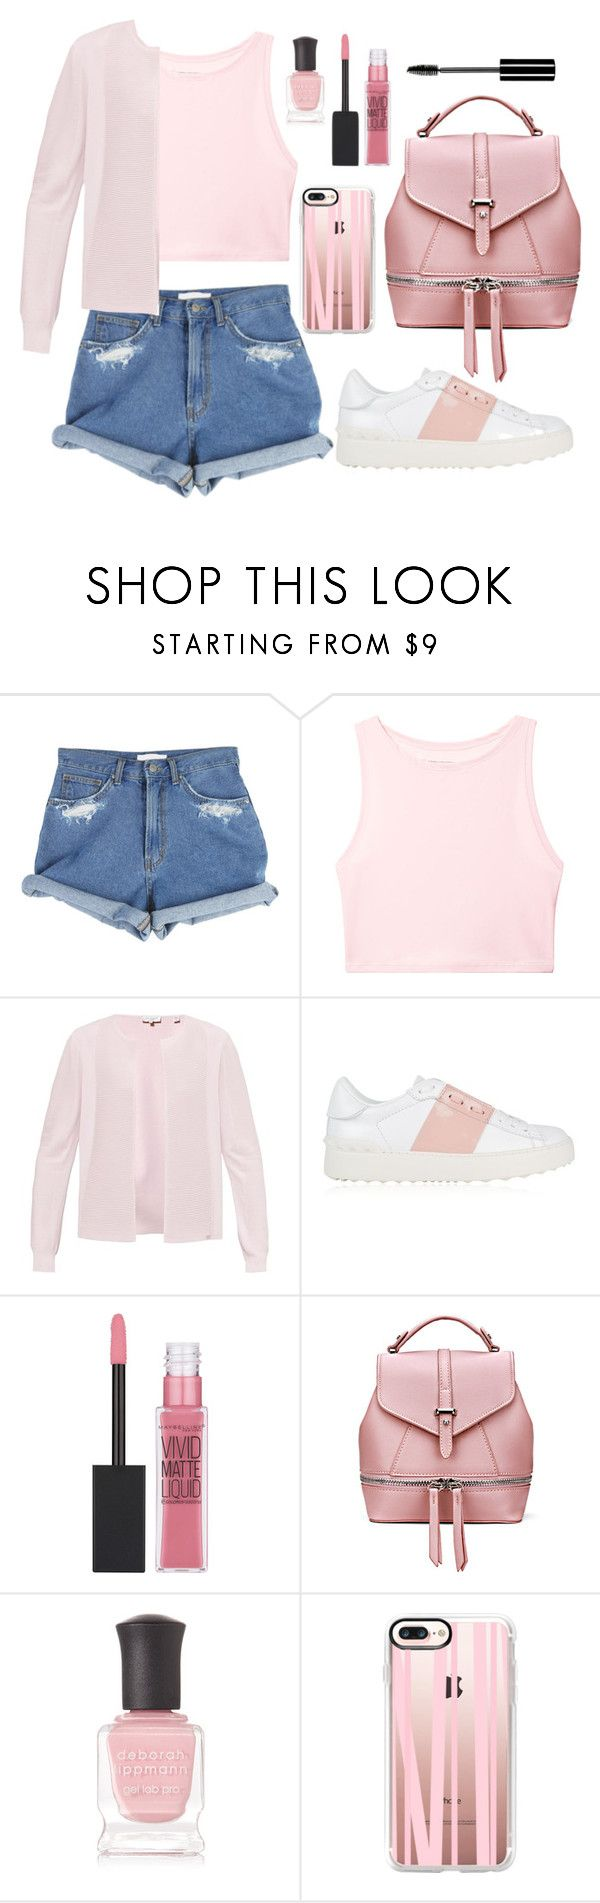 """Casual Pink"" by wolfiexo on Polyvore featuring Victoria's Secret, Ted Baker, Valentino, Maybelline, Deborah Lippmann, Casetify, Charlotte Russe, Pink, denim and shorts"